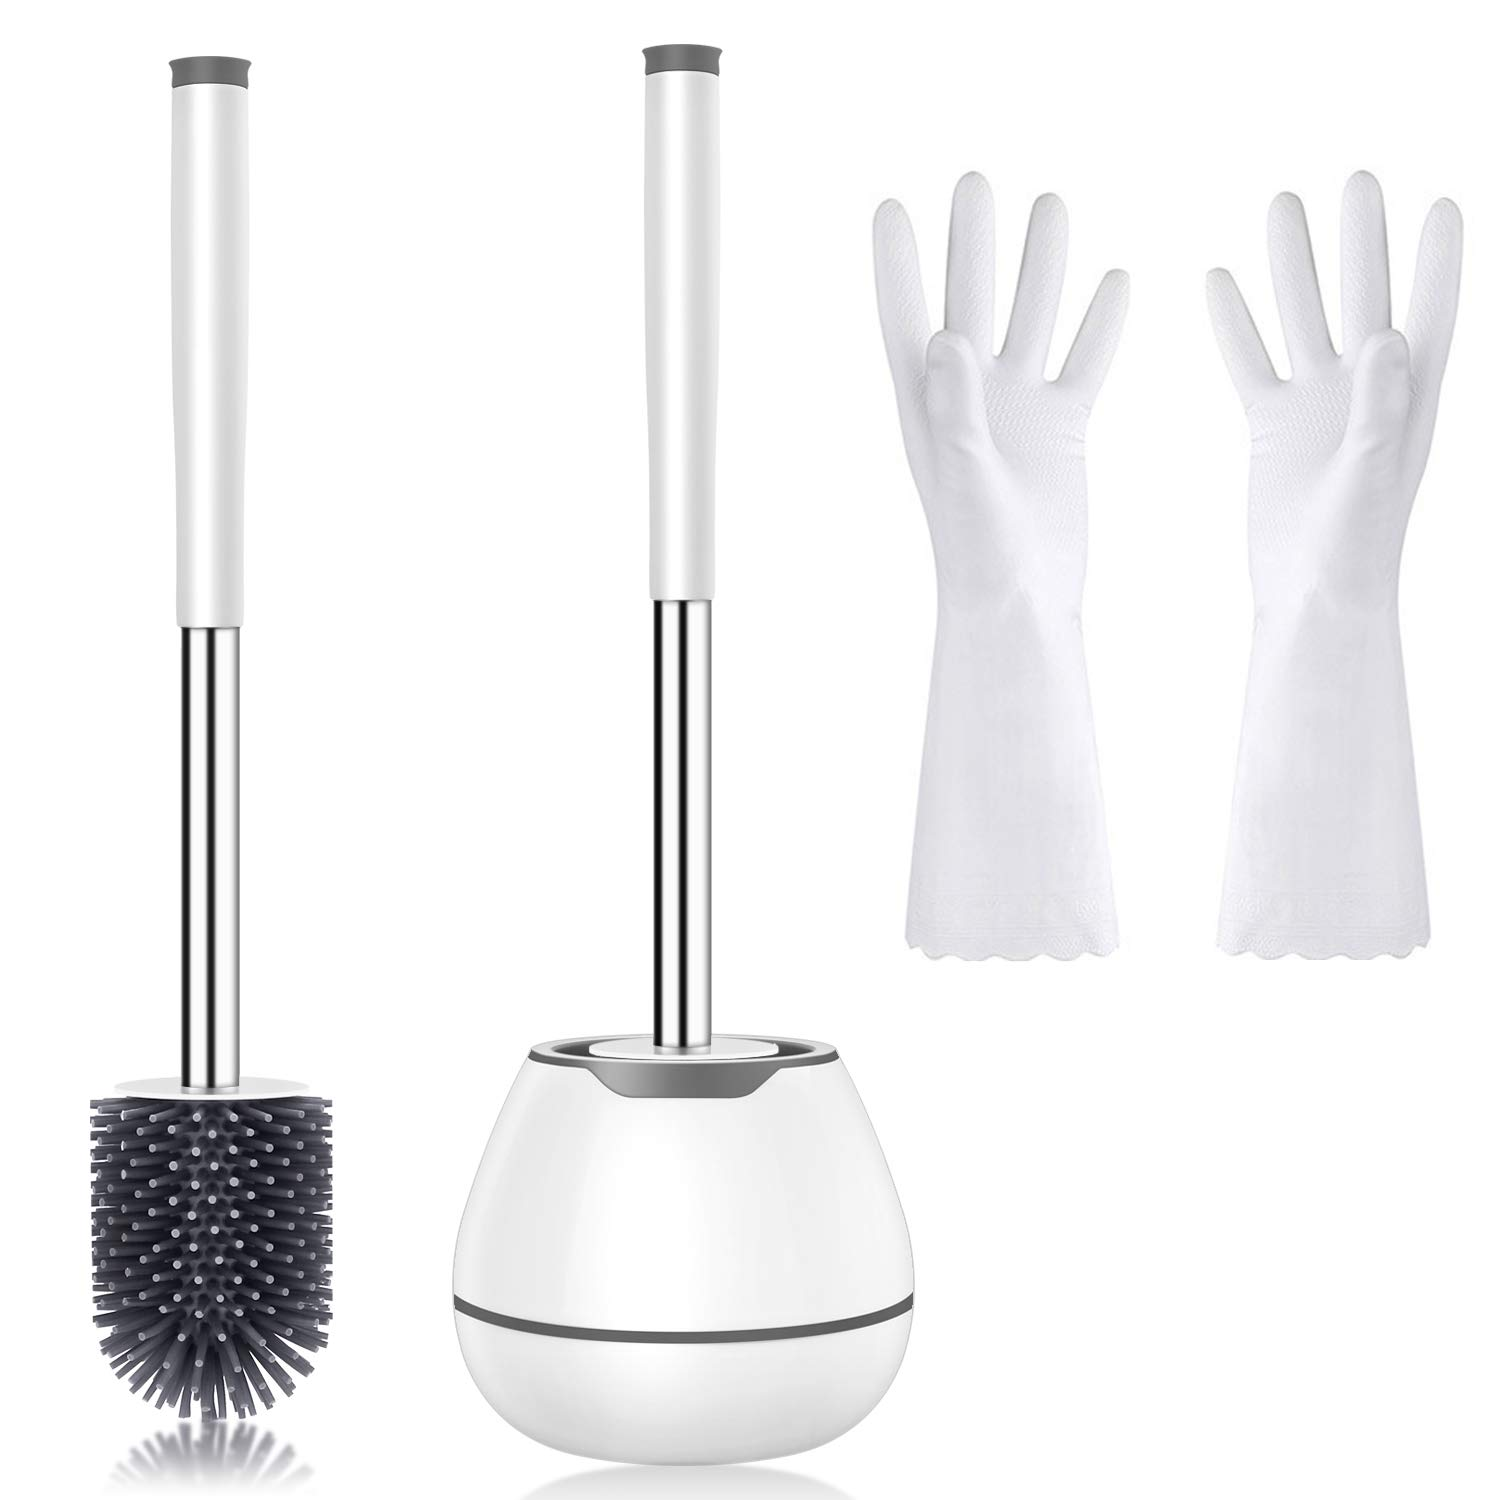 WC Toilet Brush and Holder, Bathroom Toilet Bowl Brush with Cleaning Gloves and Tweezers, White Toilet Brush Cleaner Set, Space Saving & Sturdy